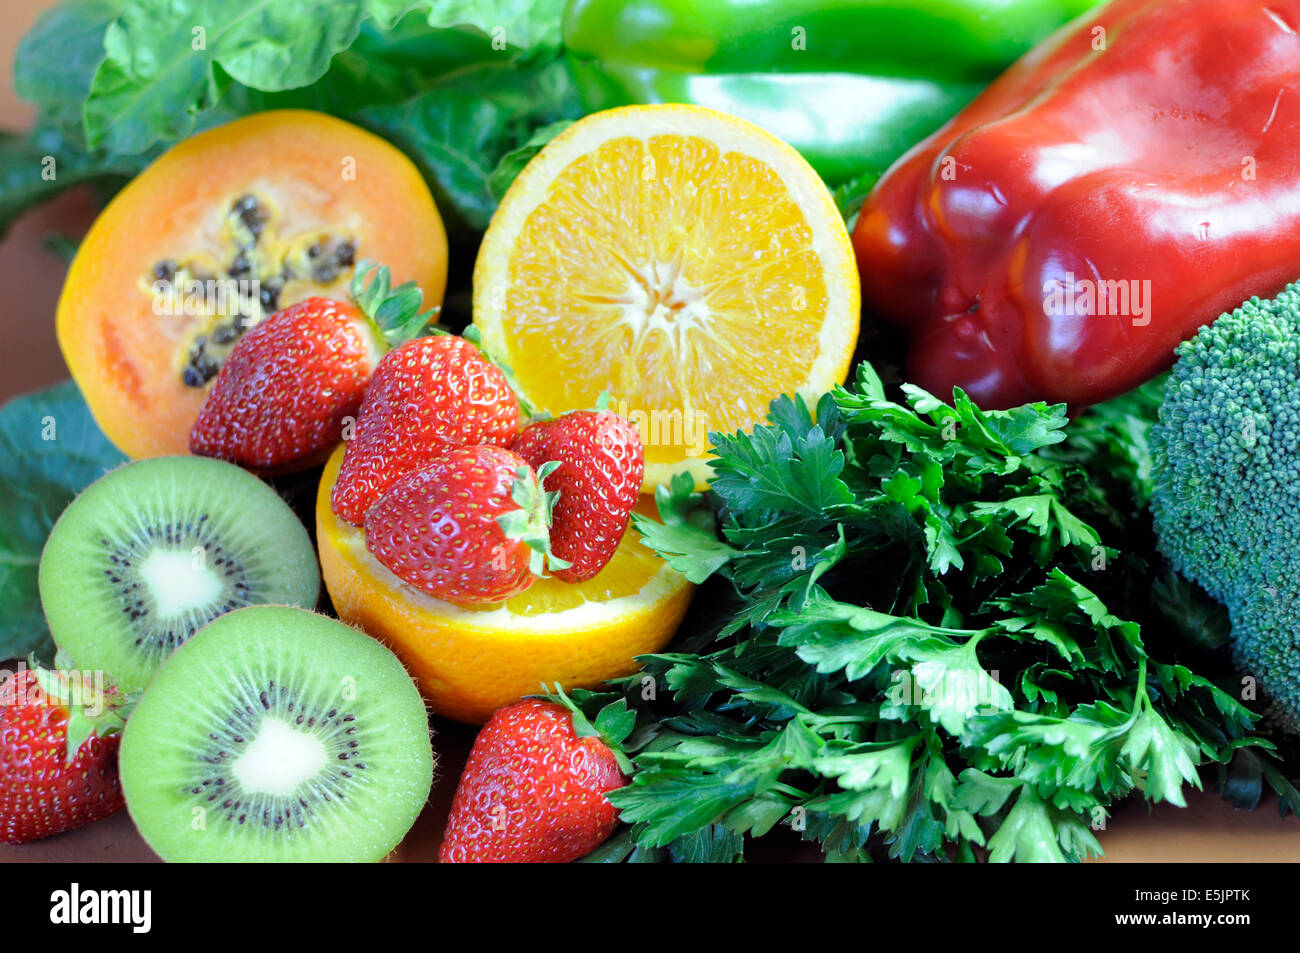 Sources of Vitamin C - oranges, strawberries, red and green capsicum peppers, dark leafy green, parsley, broccoli, - Stock Image